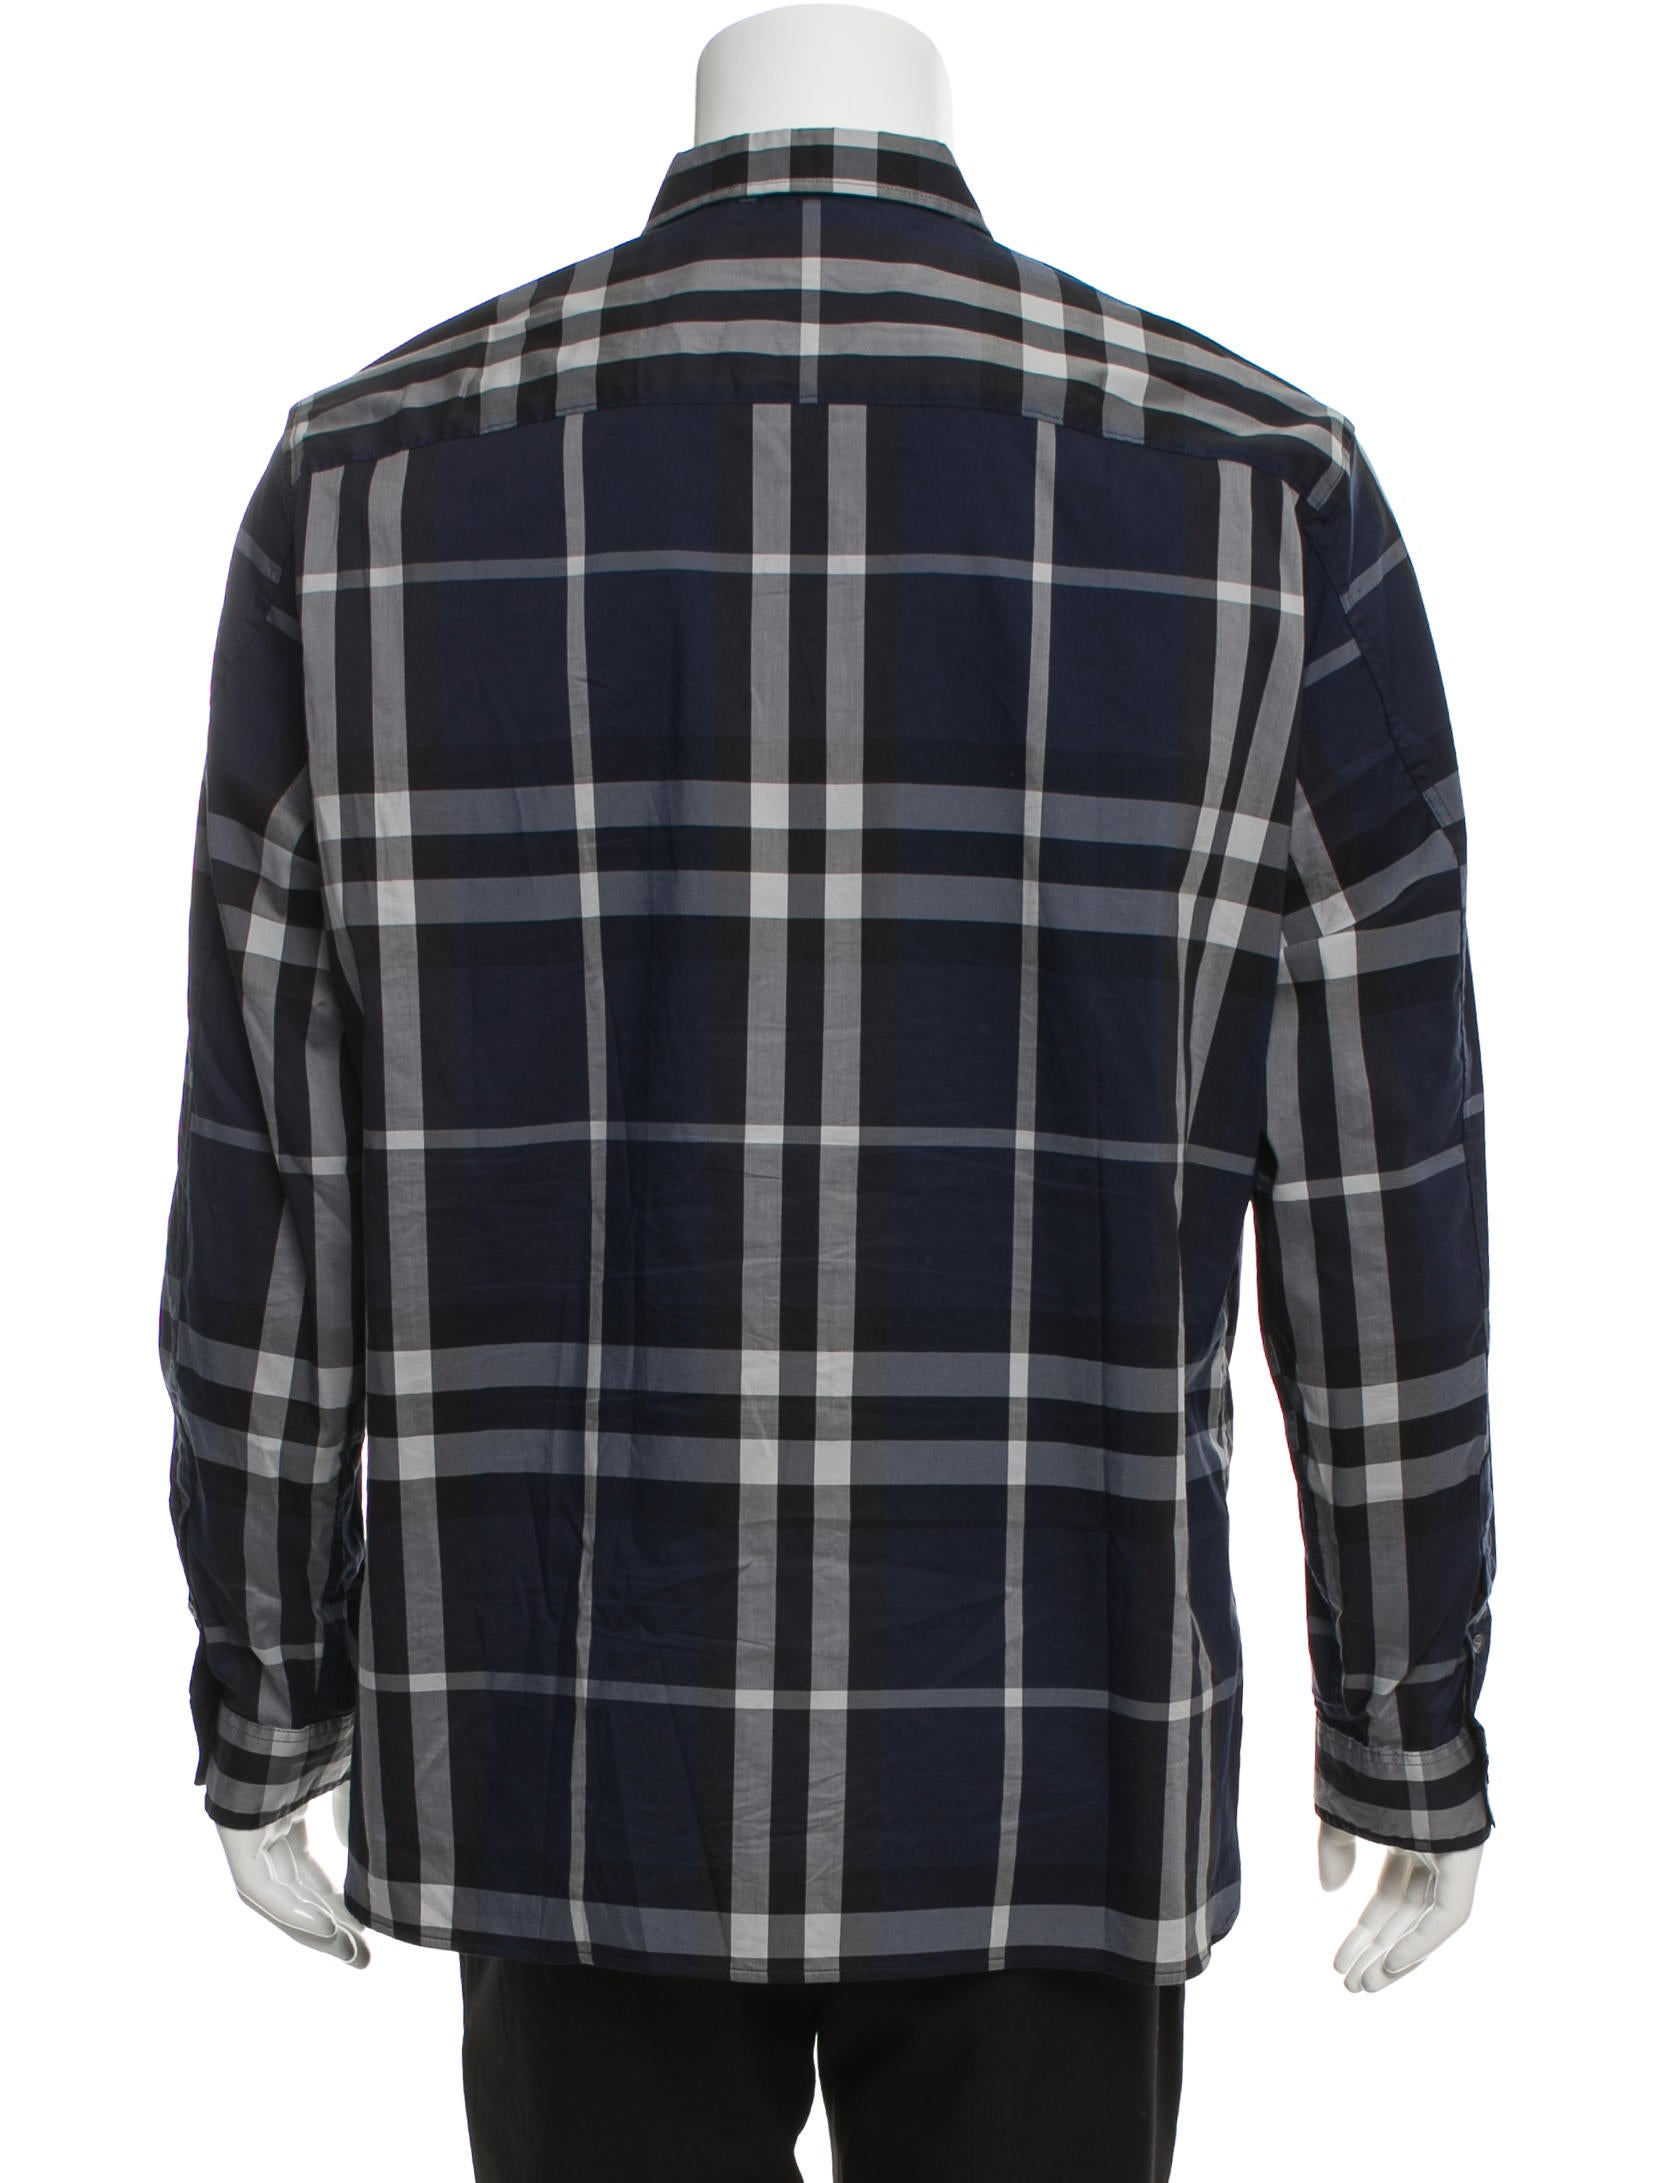 Burberry brit check print button up shirt clothing for Burberry brit checked shirt